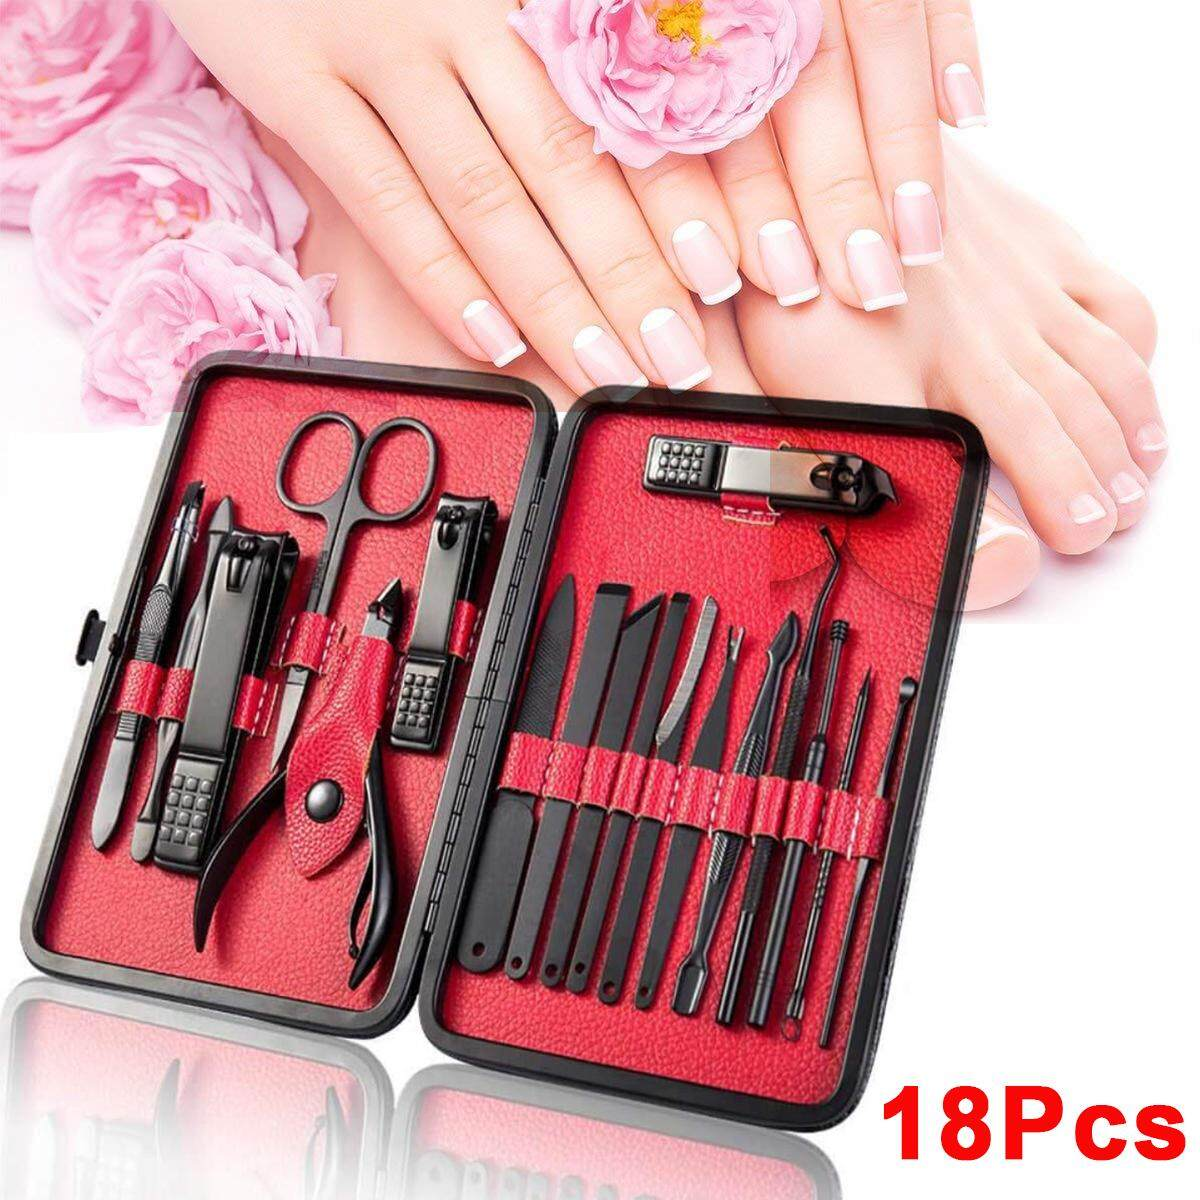 818165106b LEVTOP Manicure Set 18 In 1 Nails clipper Tools Professional Stainless  Steel Pedicure Grooming Kit with Leather Travel Case for Men and Women